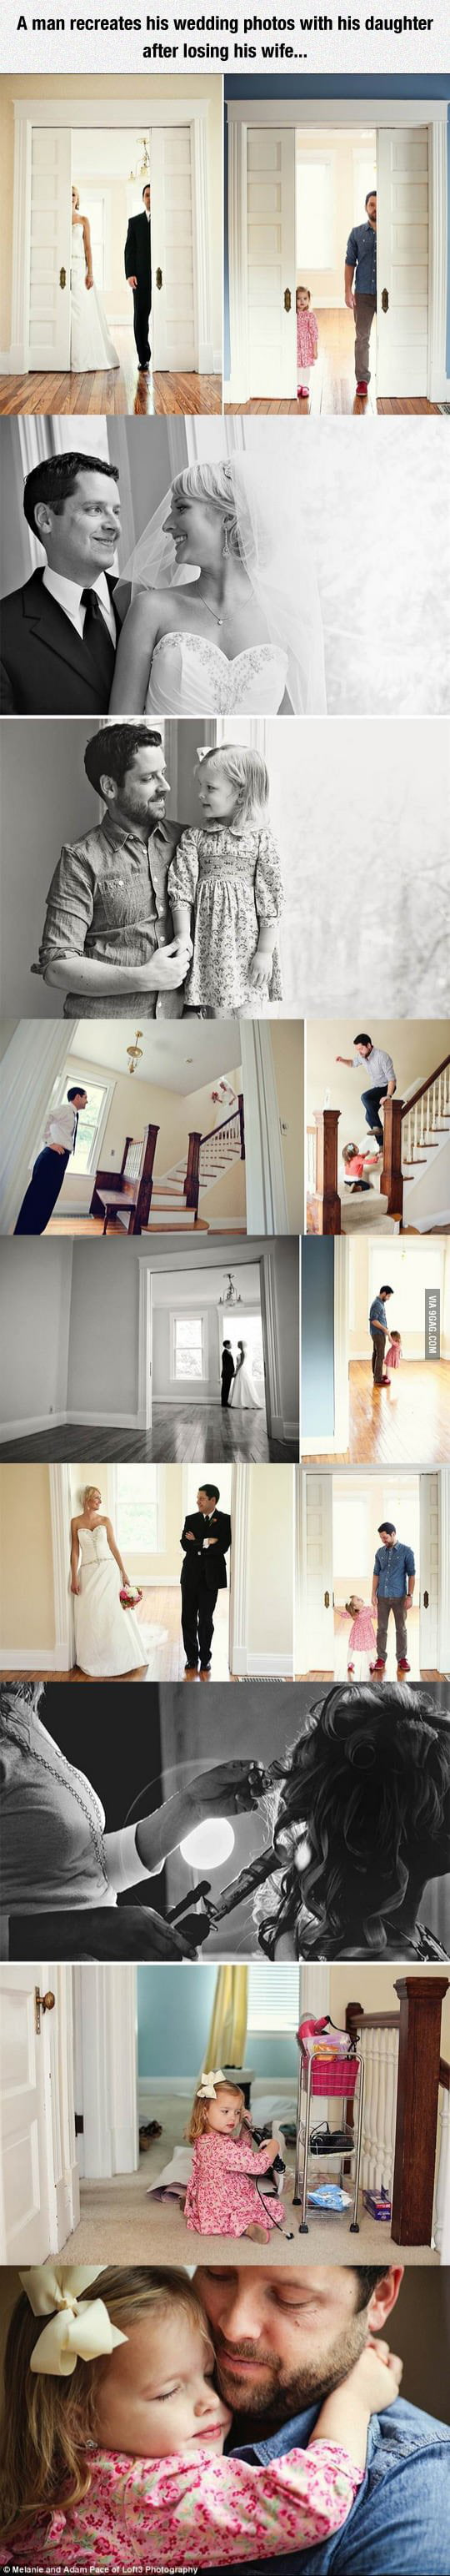 A man recreates his wedding photos with his daughter after losing his wife...